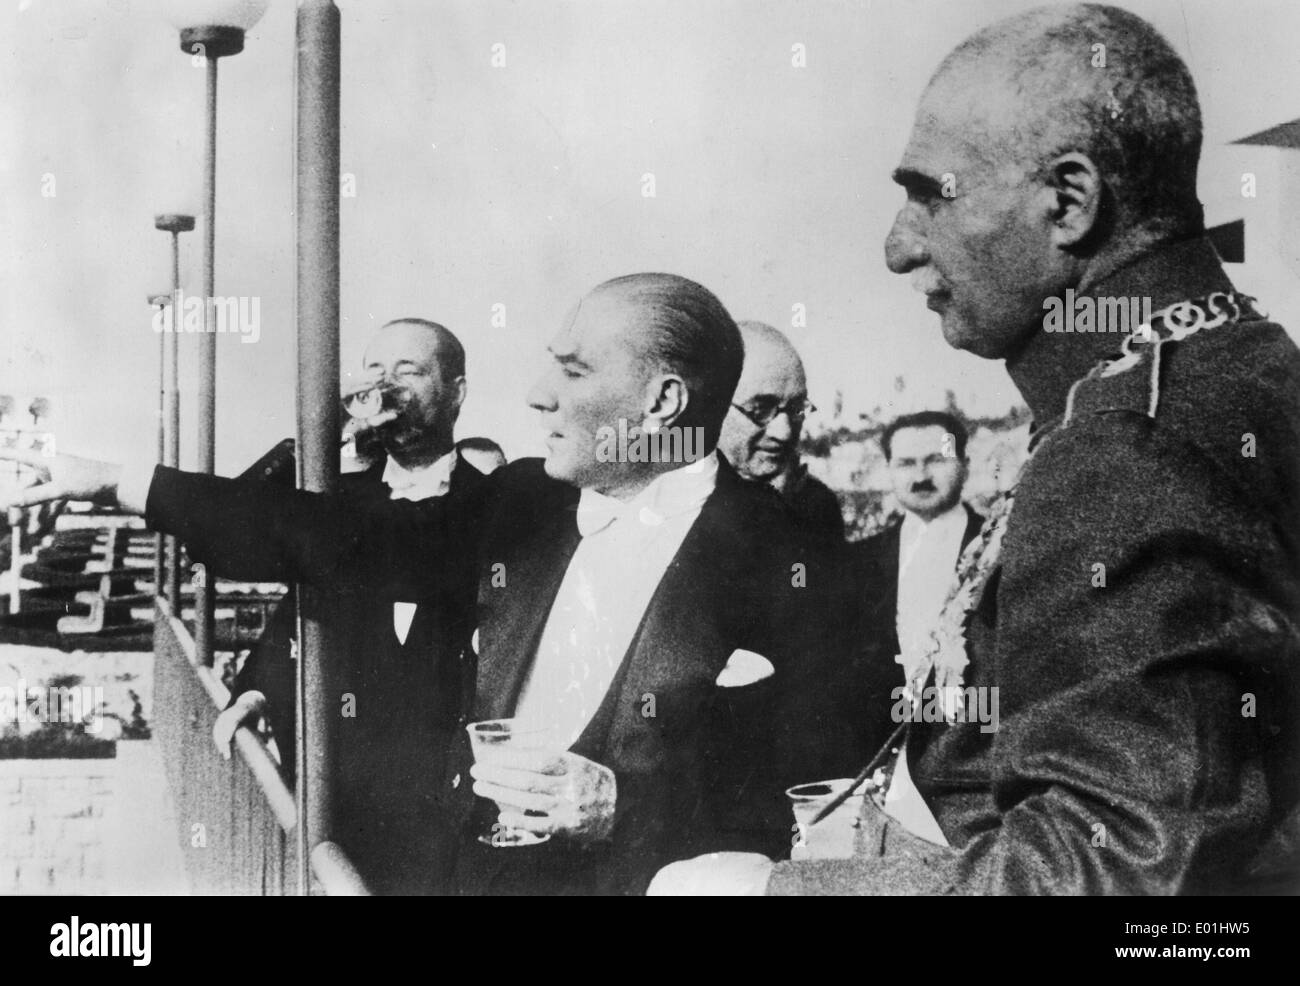 Reza Shah Pahlavi Stock Photos and Images